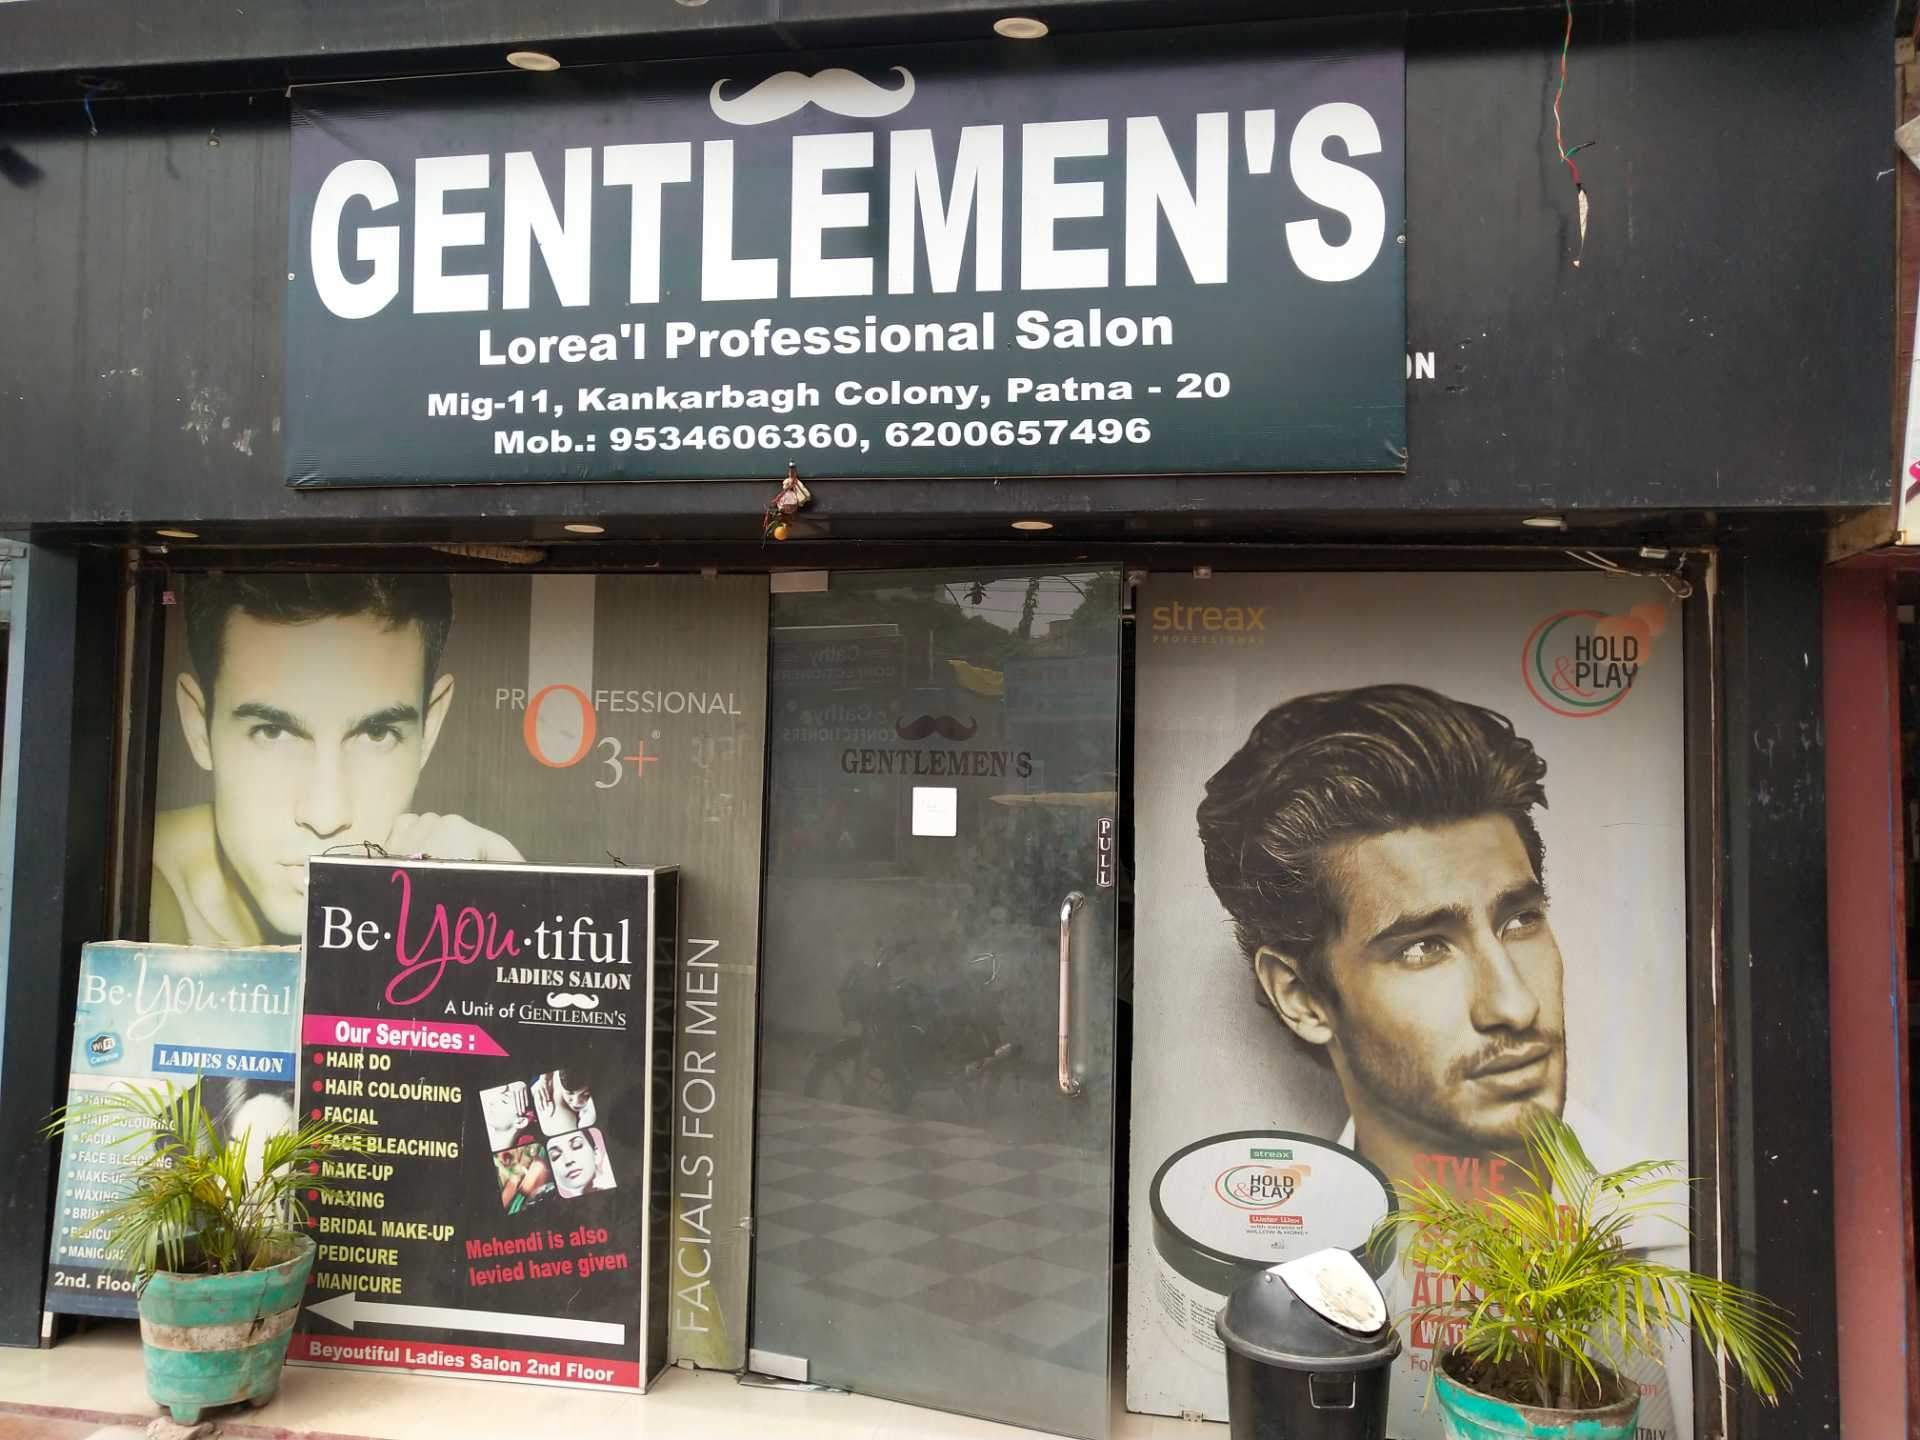 Gentlemen Salon, Kankarbagh - Beauty Parlours in Patna - Justdial